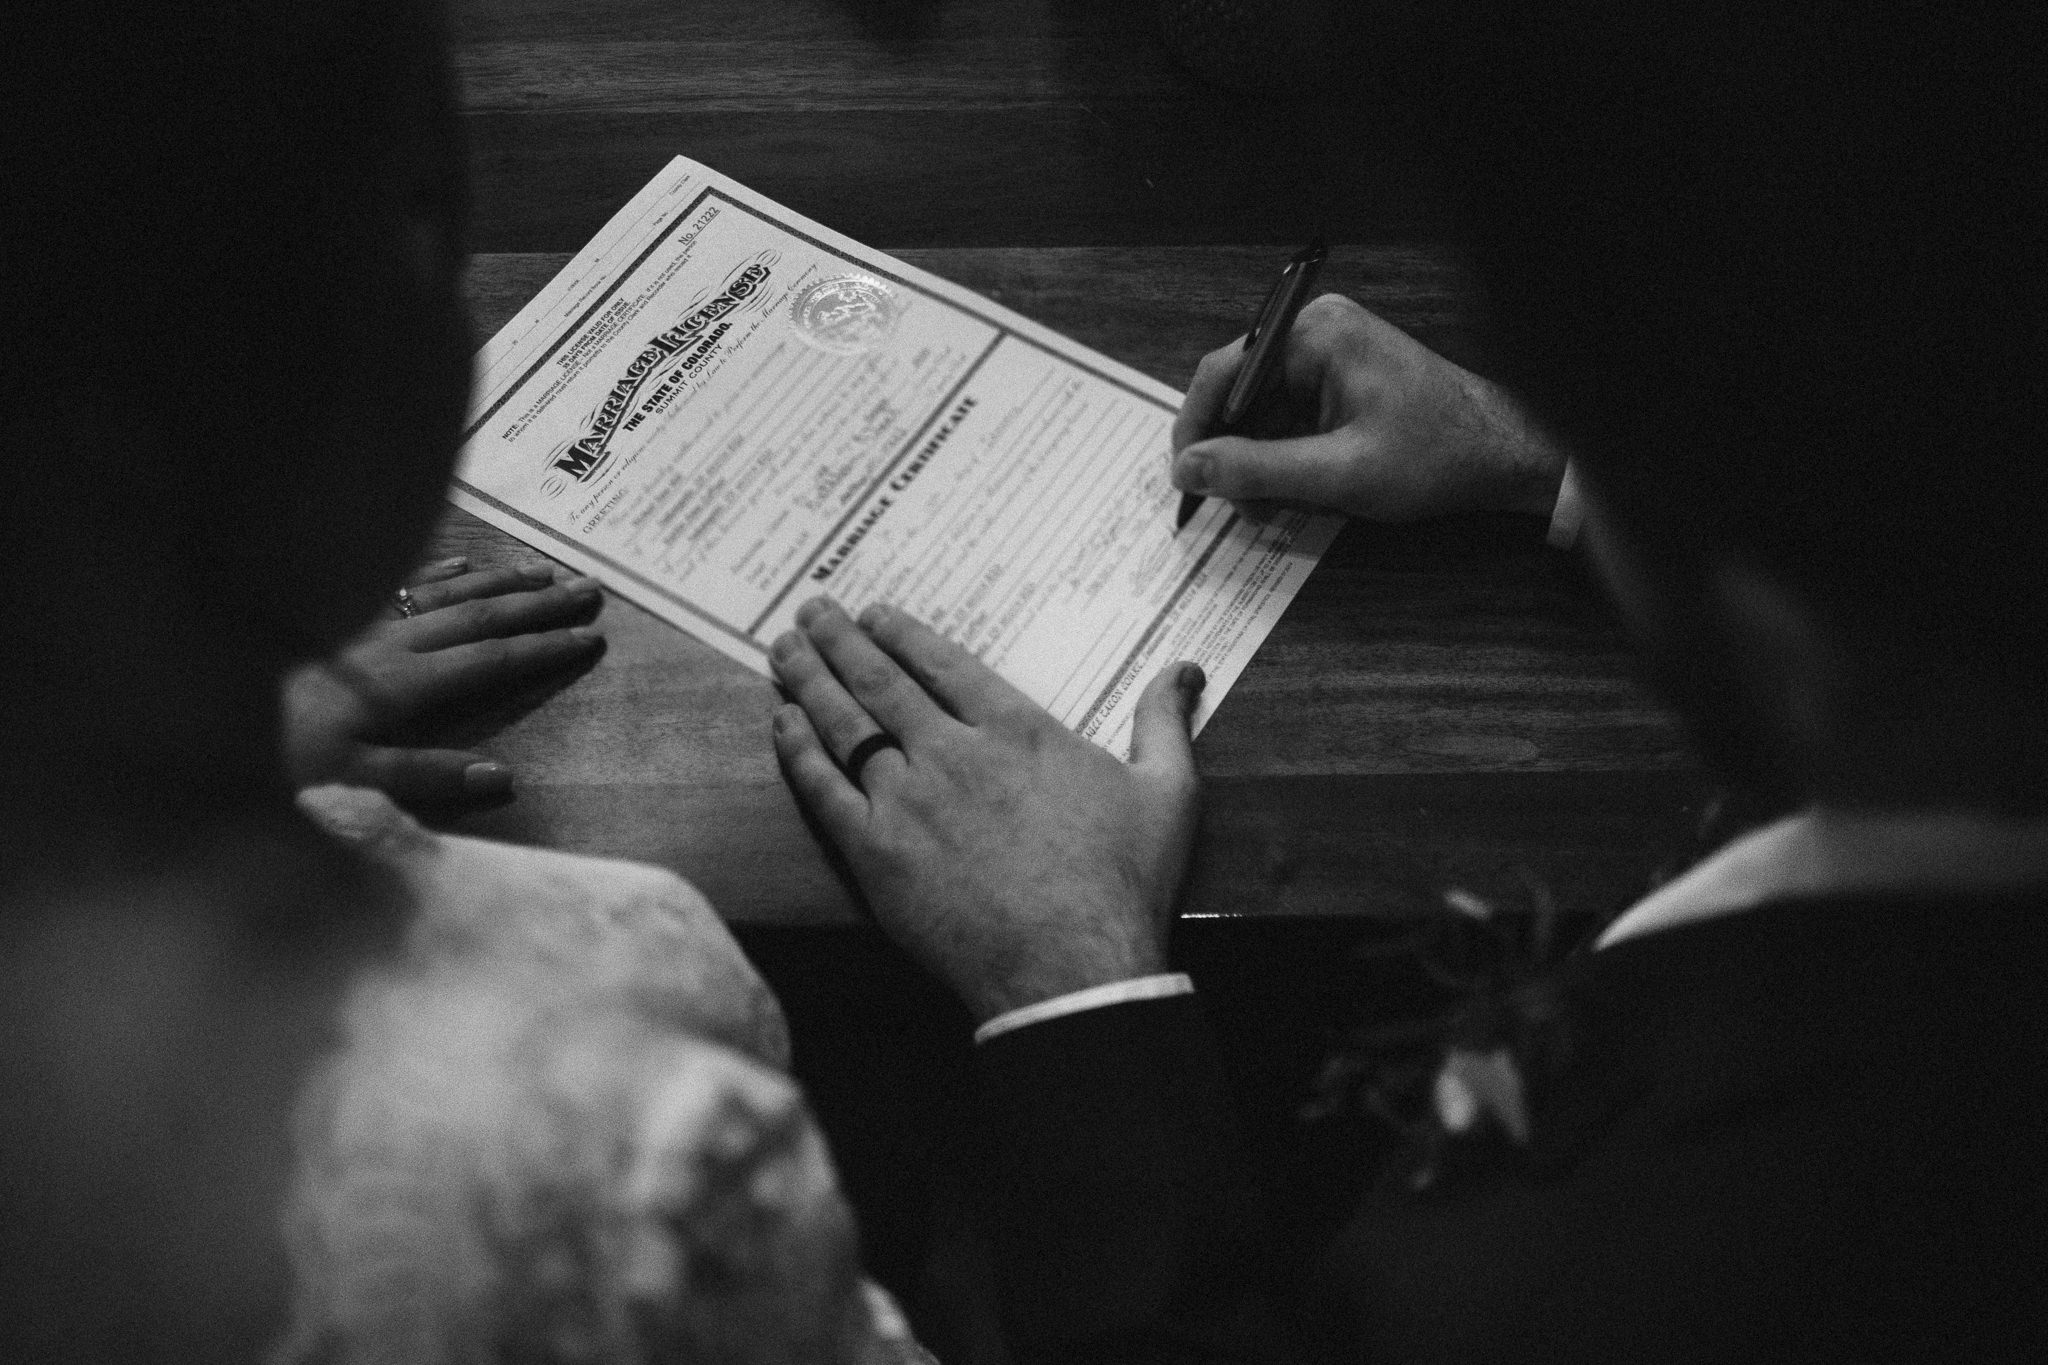 Bride and groom self-solemnize their marriage license at Breckenridge elopement.